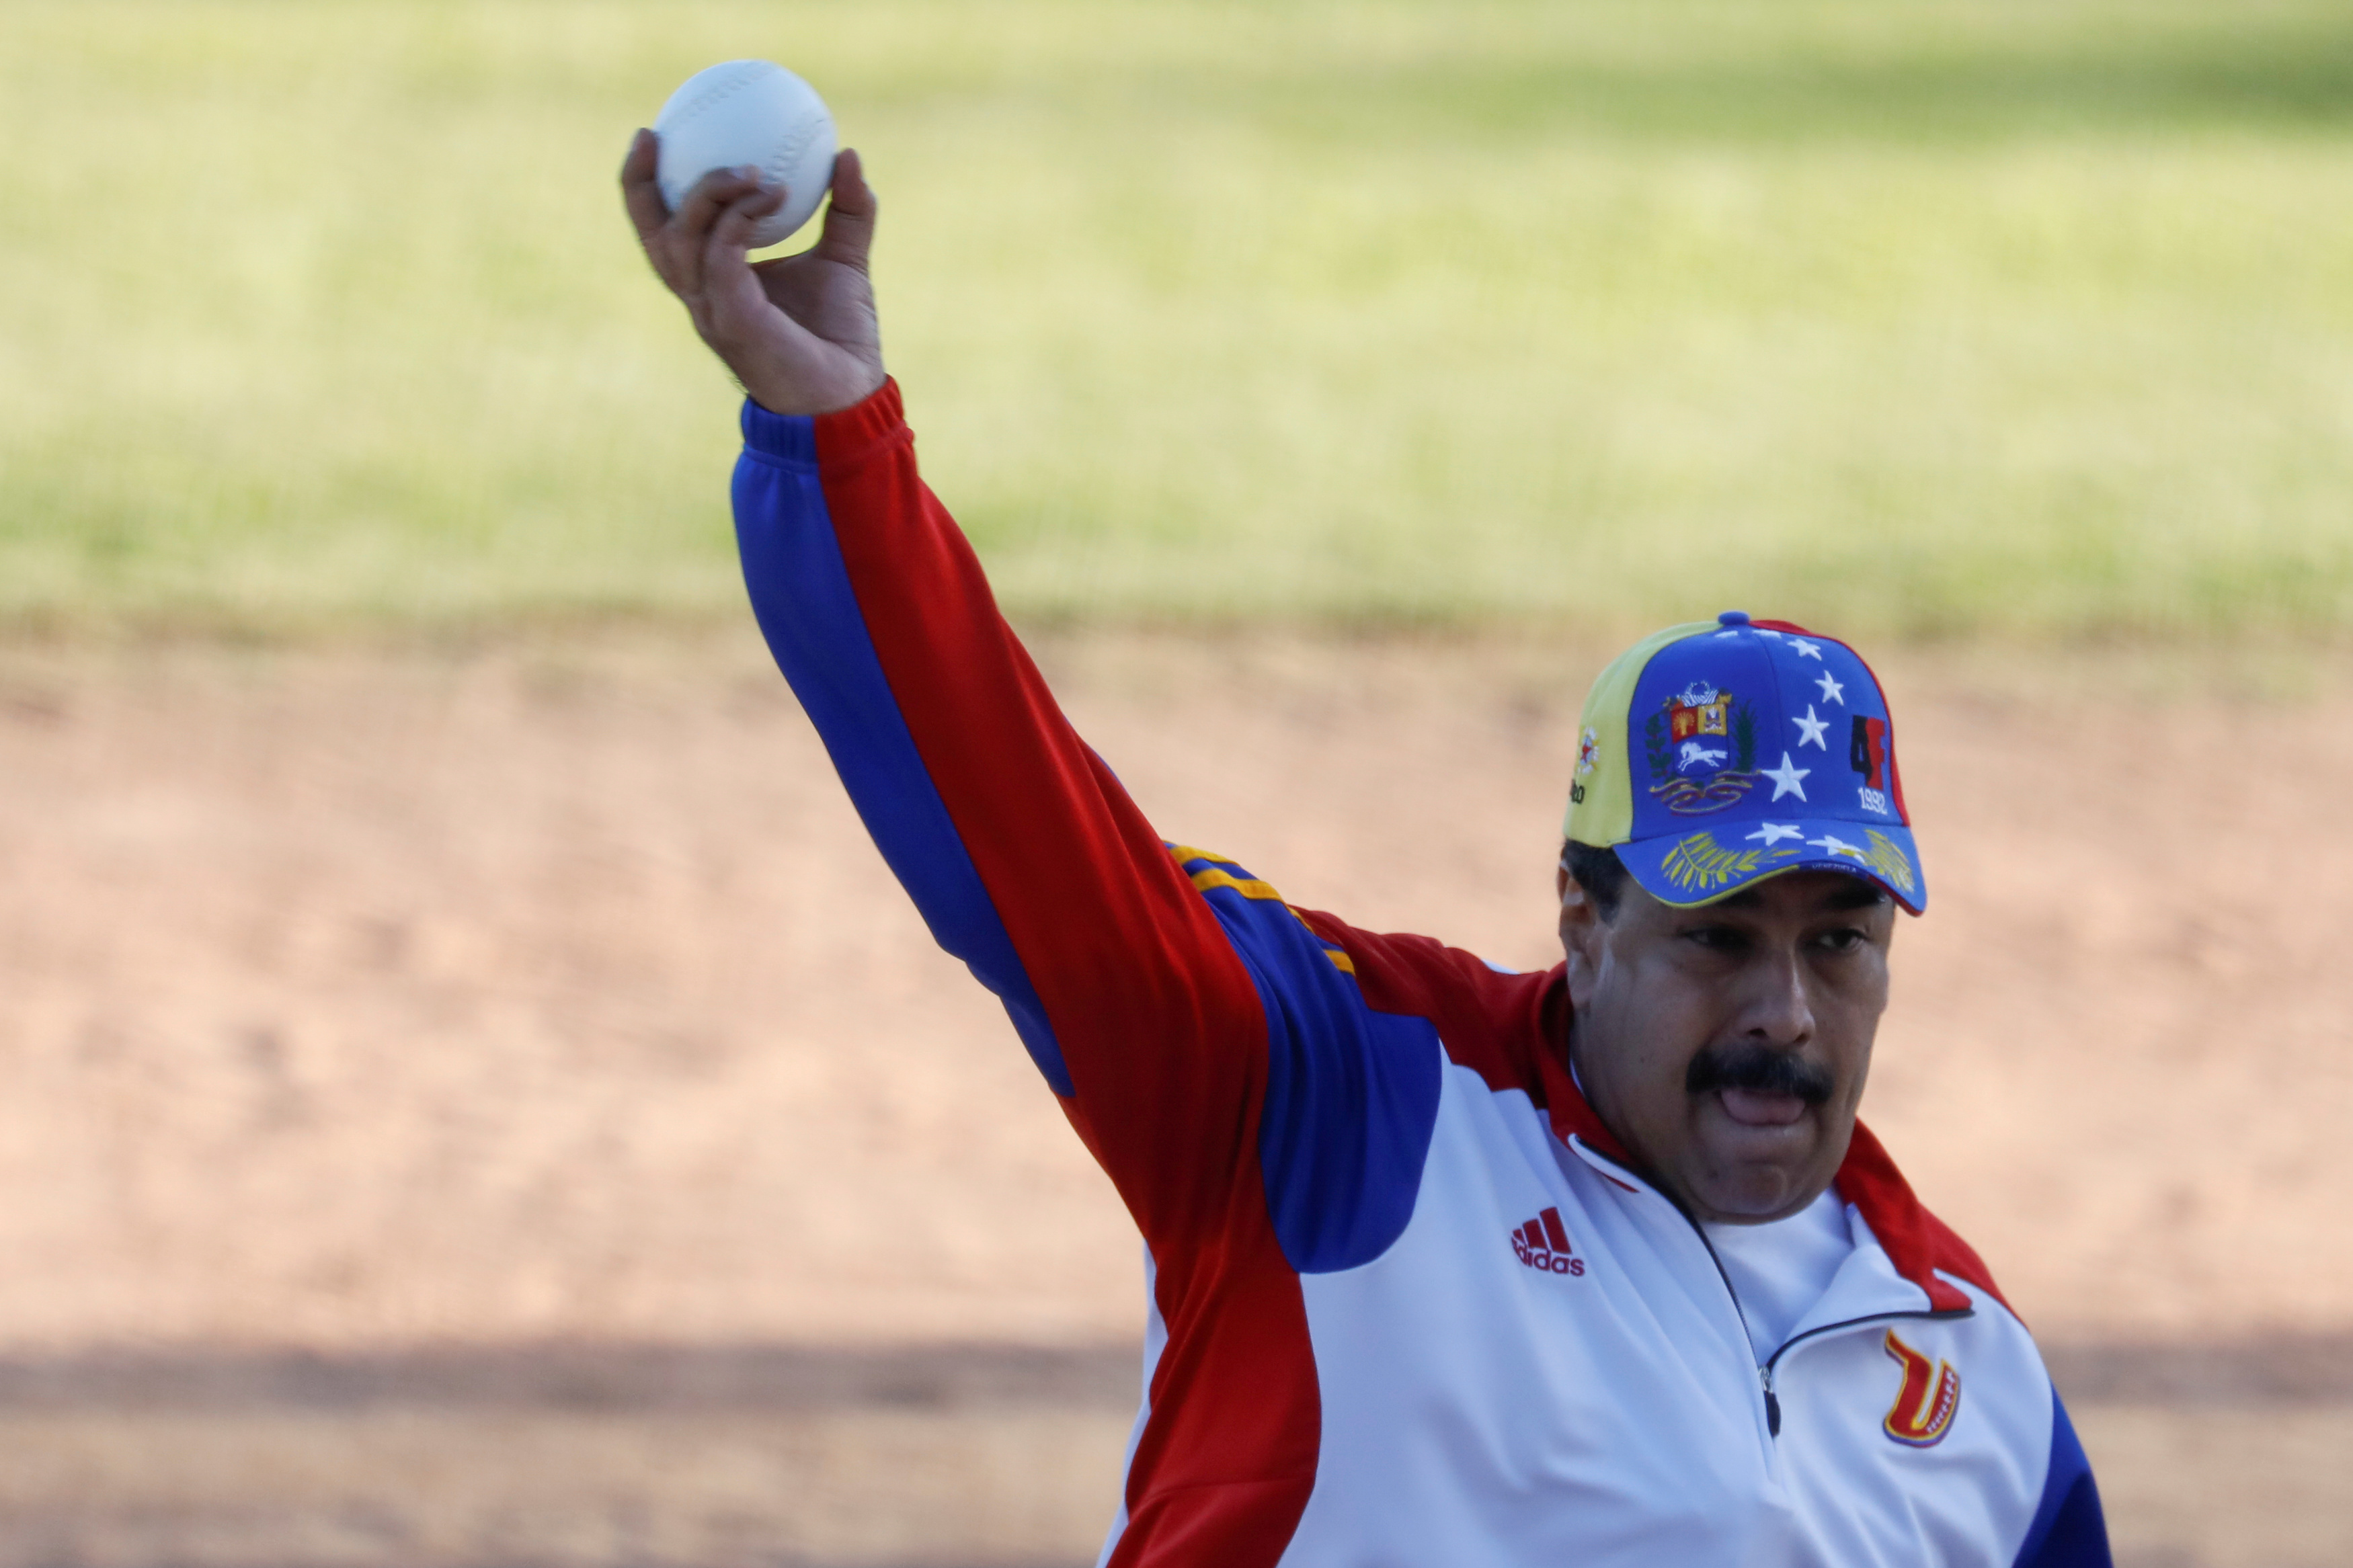 Venezuela's President Nicolas Maduro throws the ball during a softball game with ministers and military high command members at Fuerte Tiuna military base, in Caracas, Venezuela, Jan. 28, 2018.